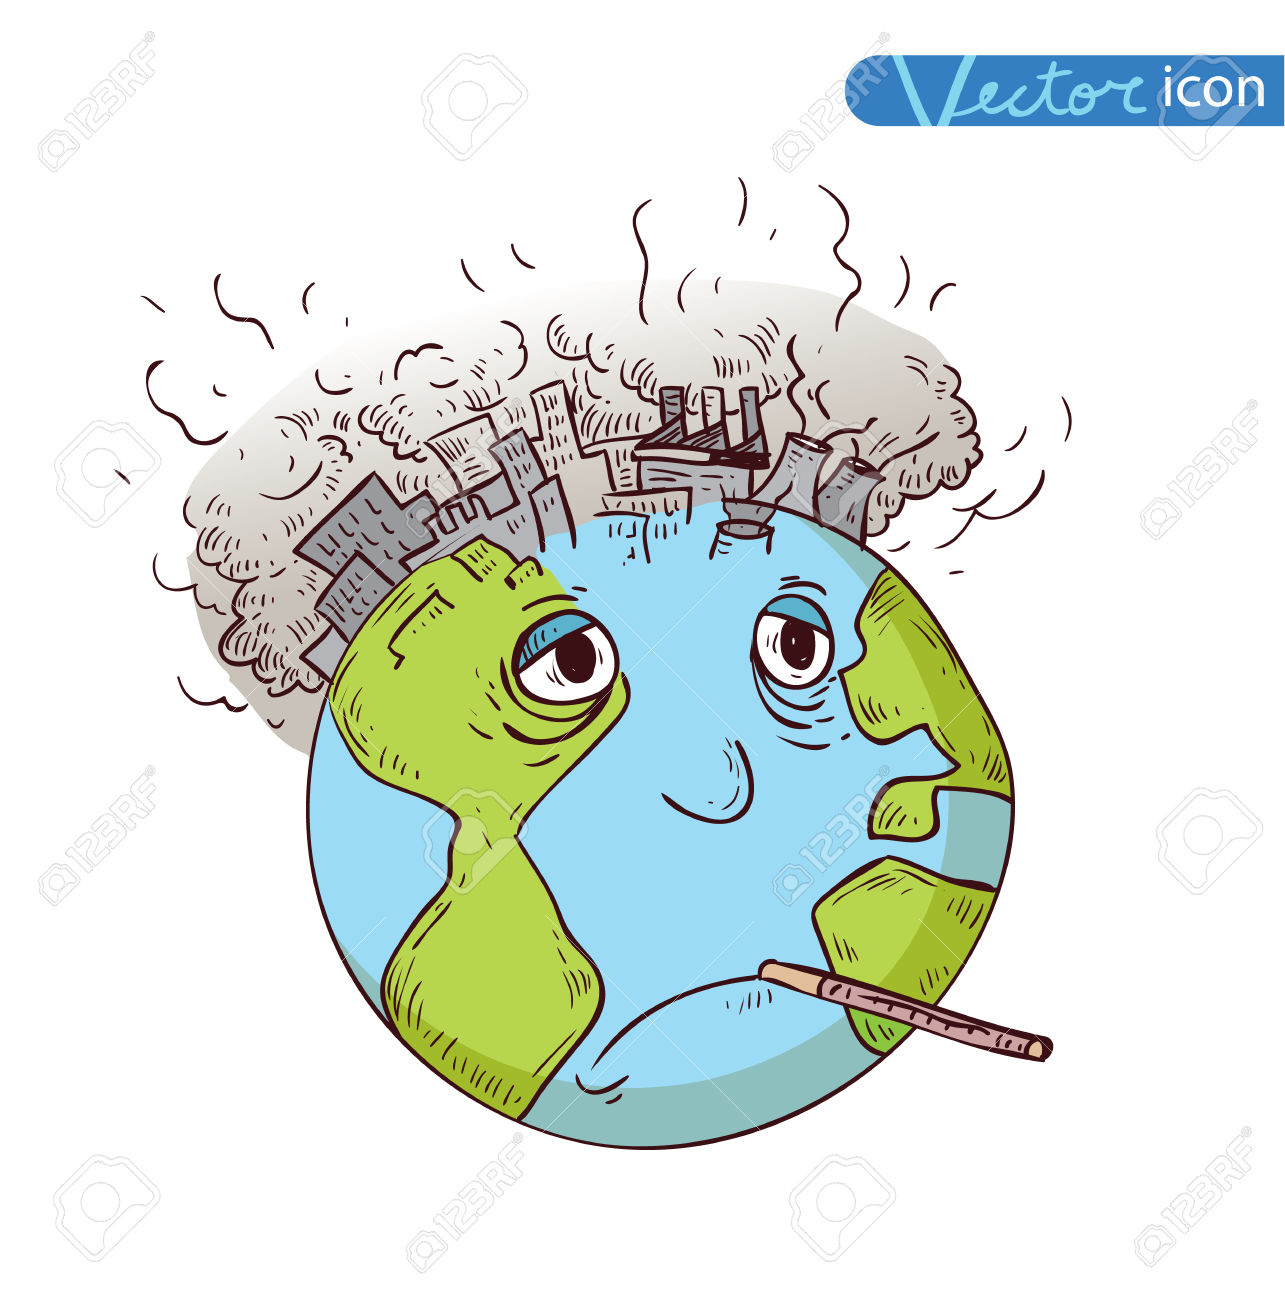 Drawing at getdrawings com. Pollution clipart